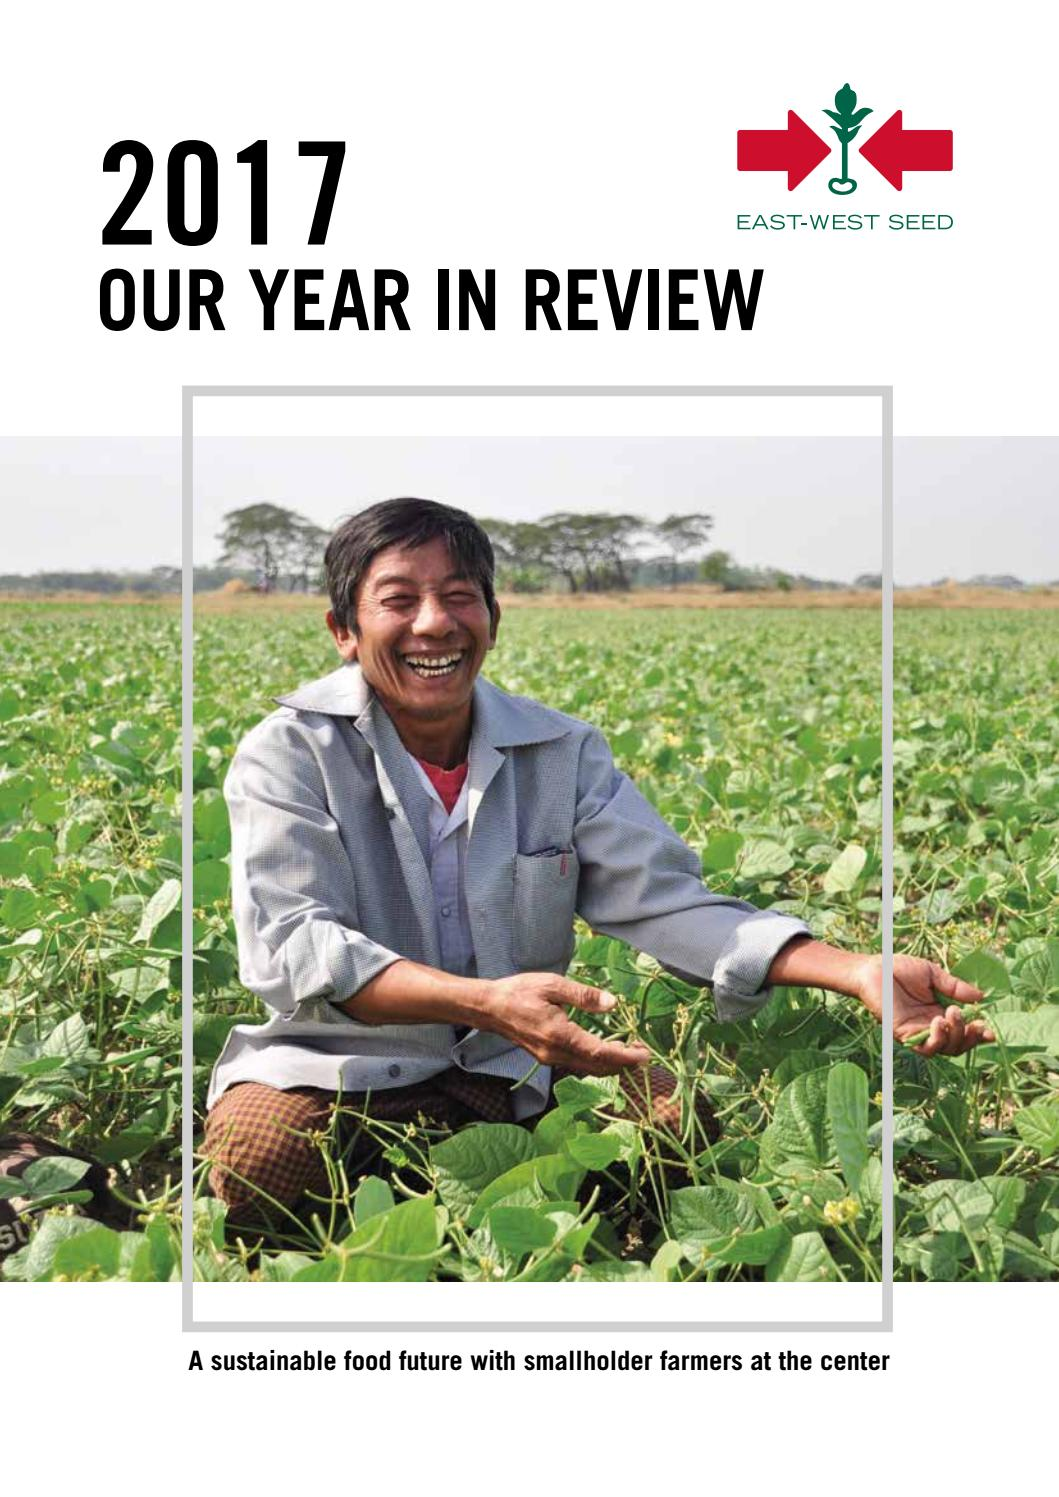 2017 Our Year in Review by East-West Seed - issuu